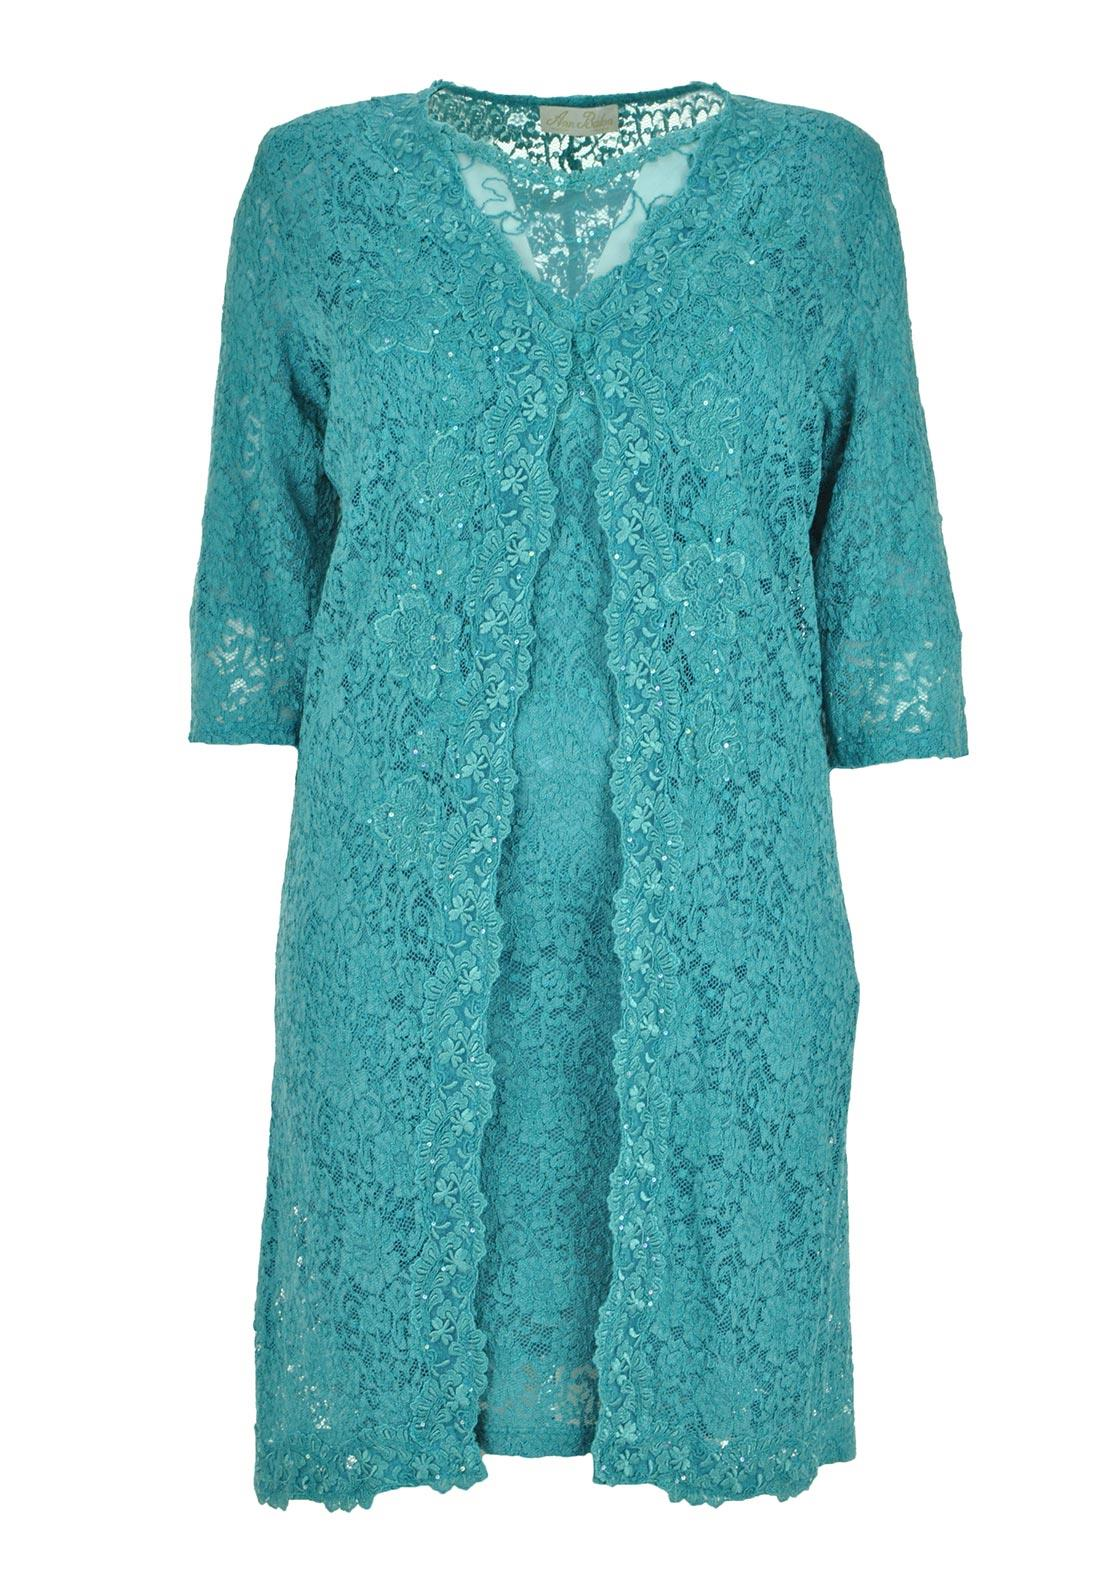 Ann Balon Annalisa Lace Dress and Long Jacket, Jade Green 14-16